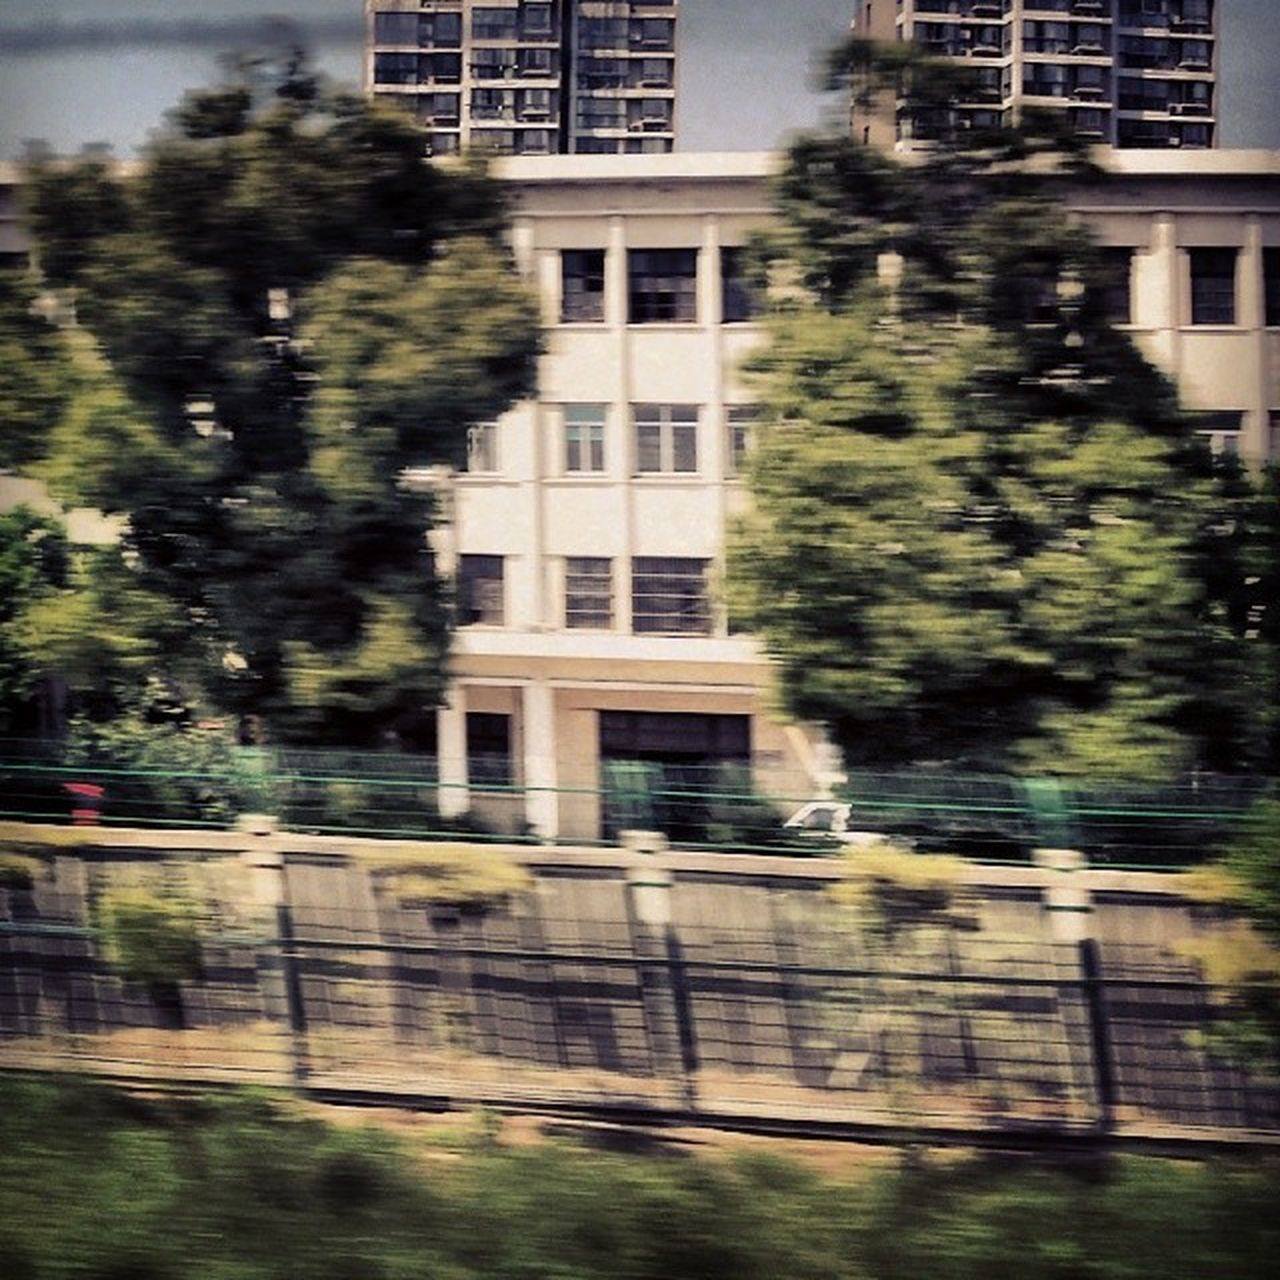 architecture, building exterior, built structure, tree, blurred motion, no people, day, city, outdoors, motion, nature, sky